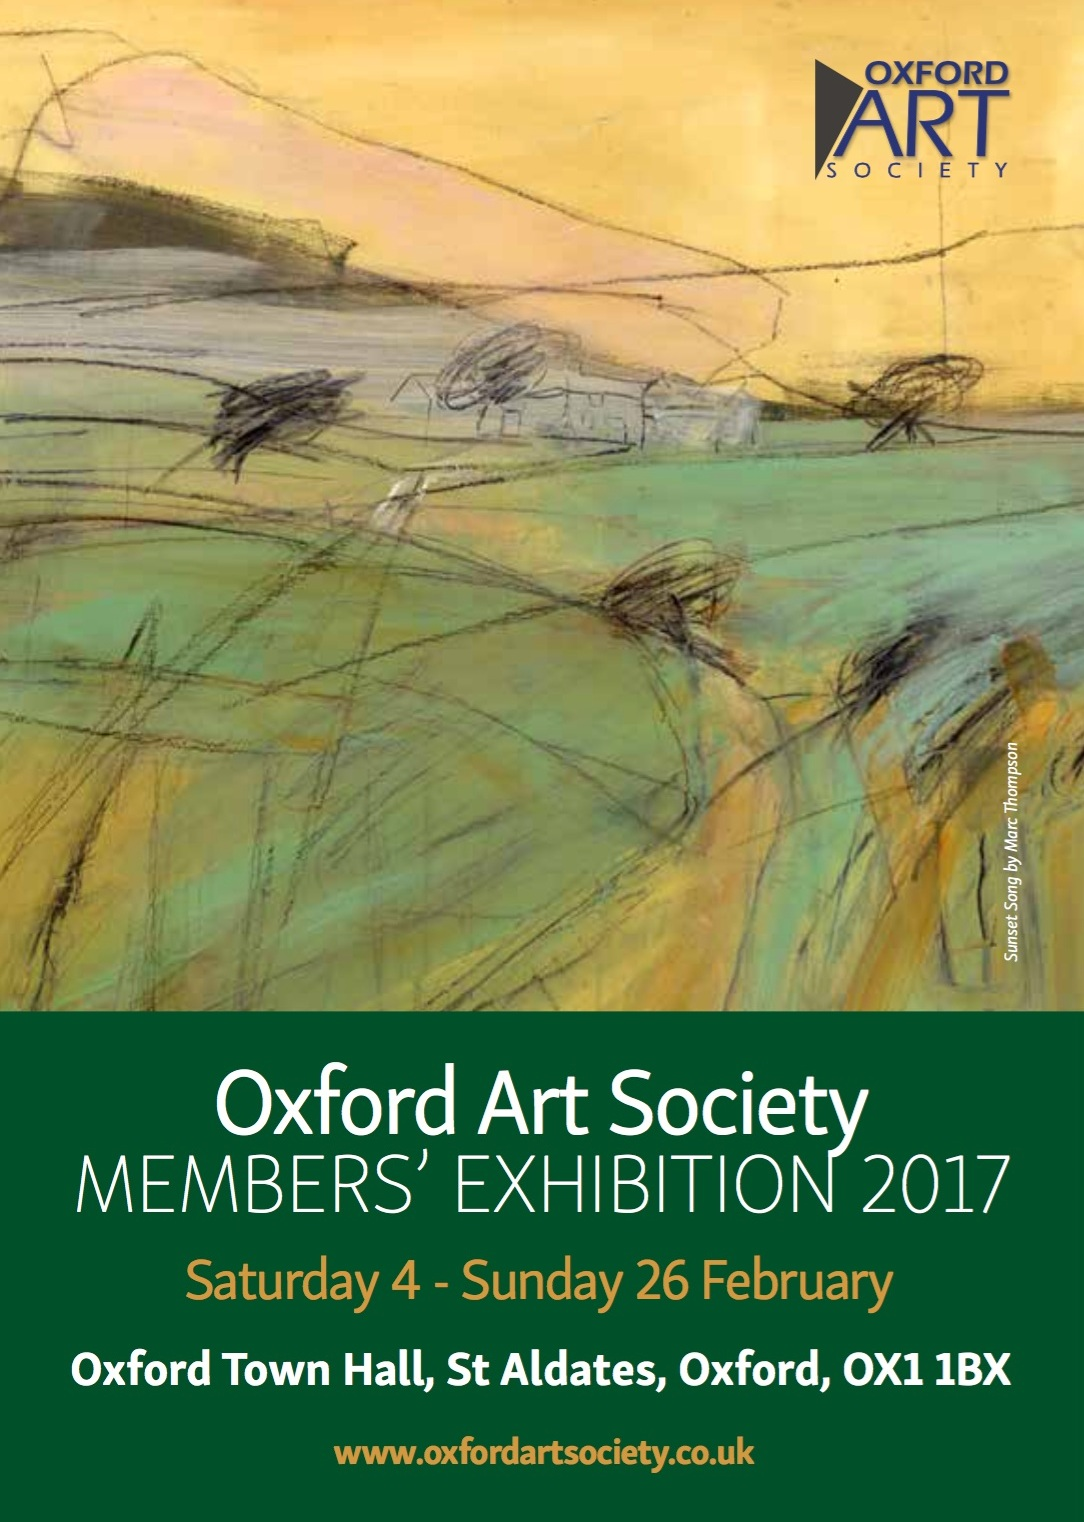 Past Exhibitions - Oxford Artweeks almost annually since 2002. Oxford Art Society Exhibitions since 2003. O3 Gallery, Oxford Castle, 2008 - one of a small number of selected artists in an Artweeks 'Taster' exhibition.